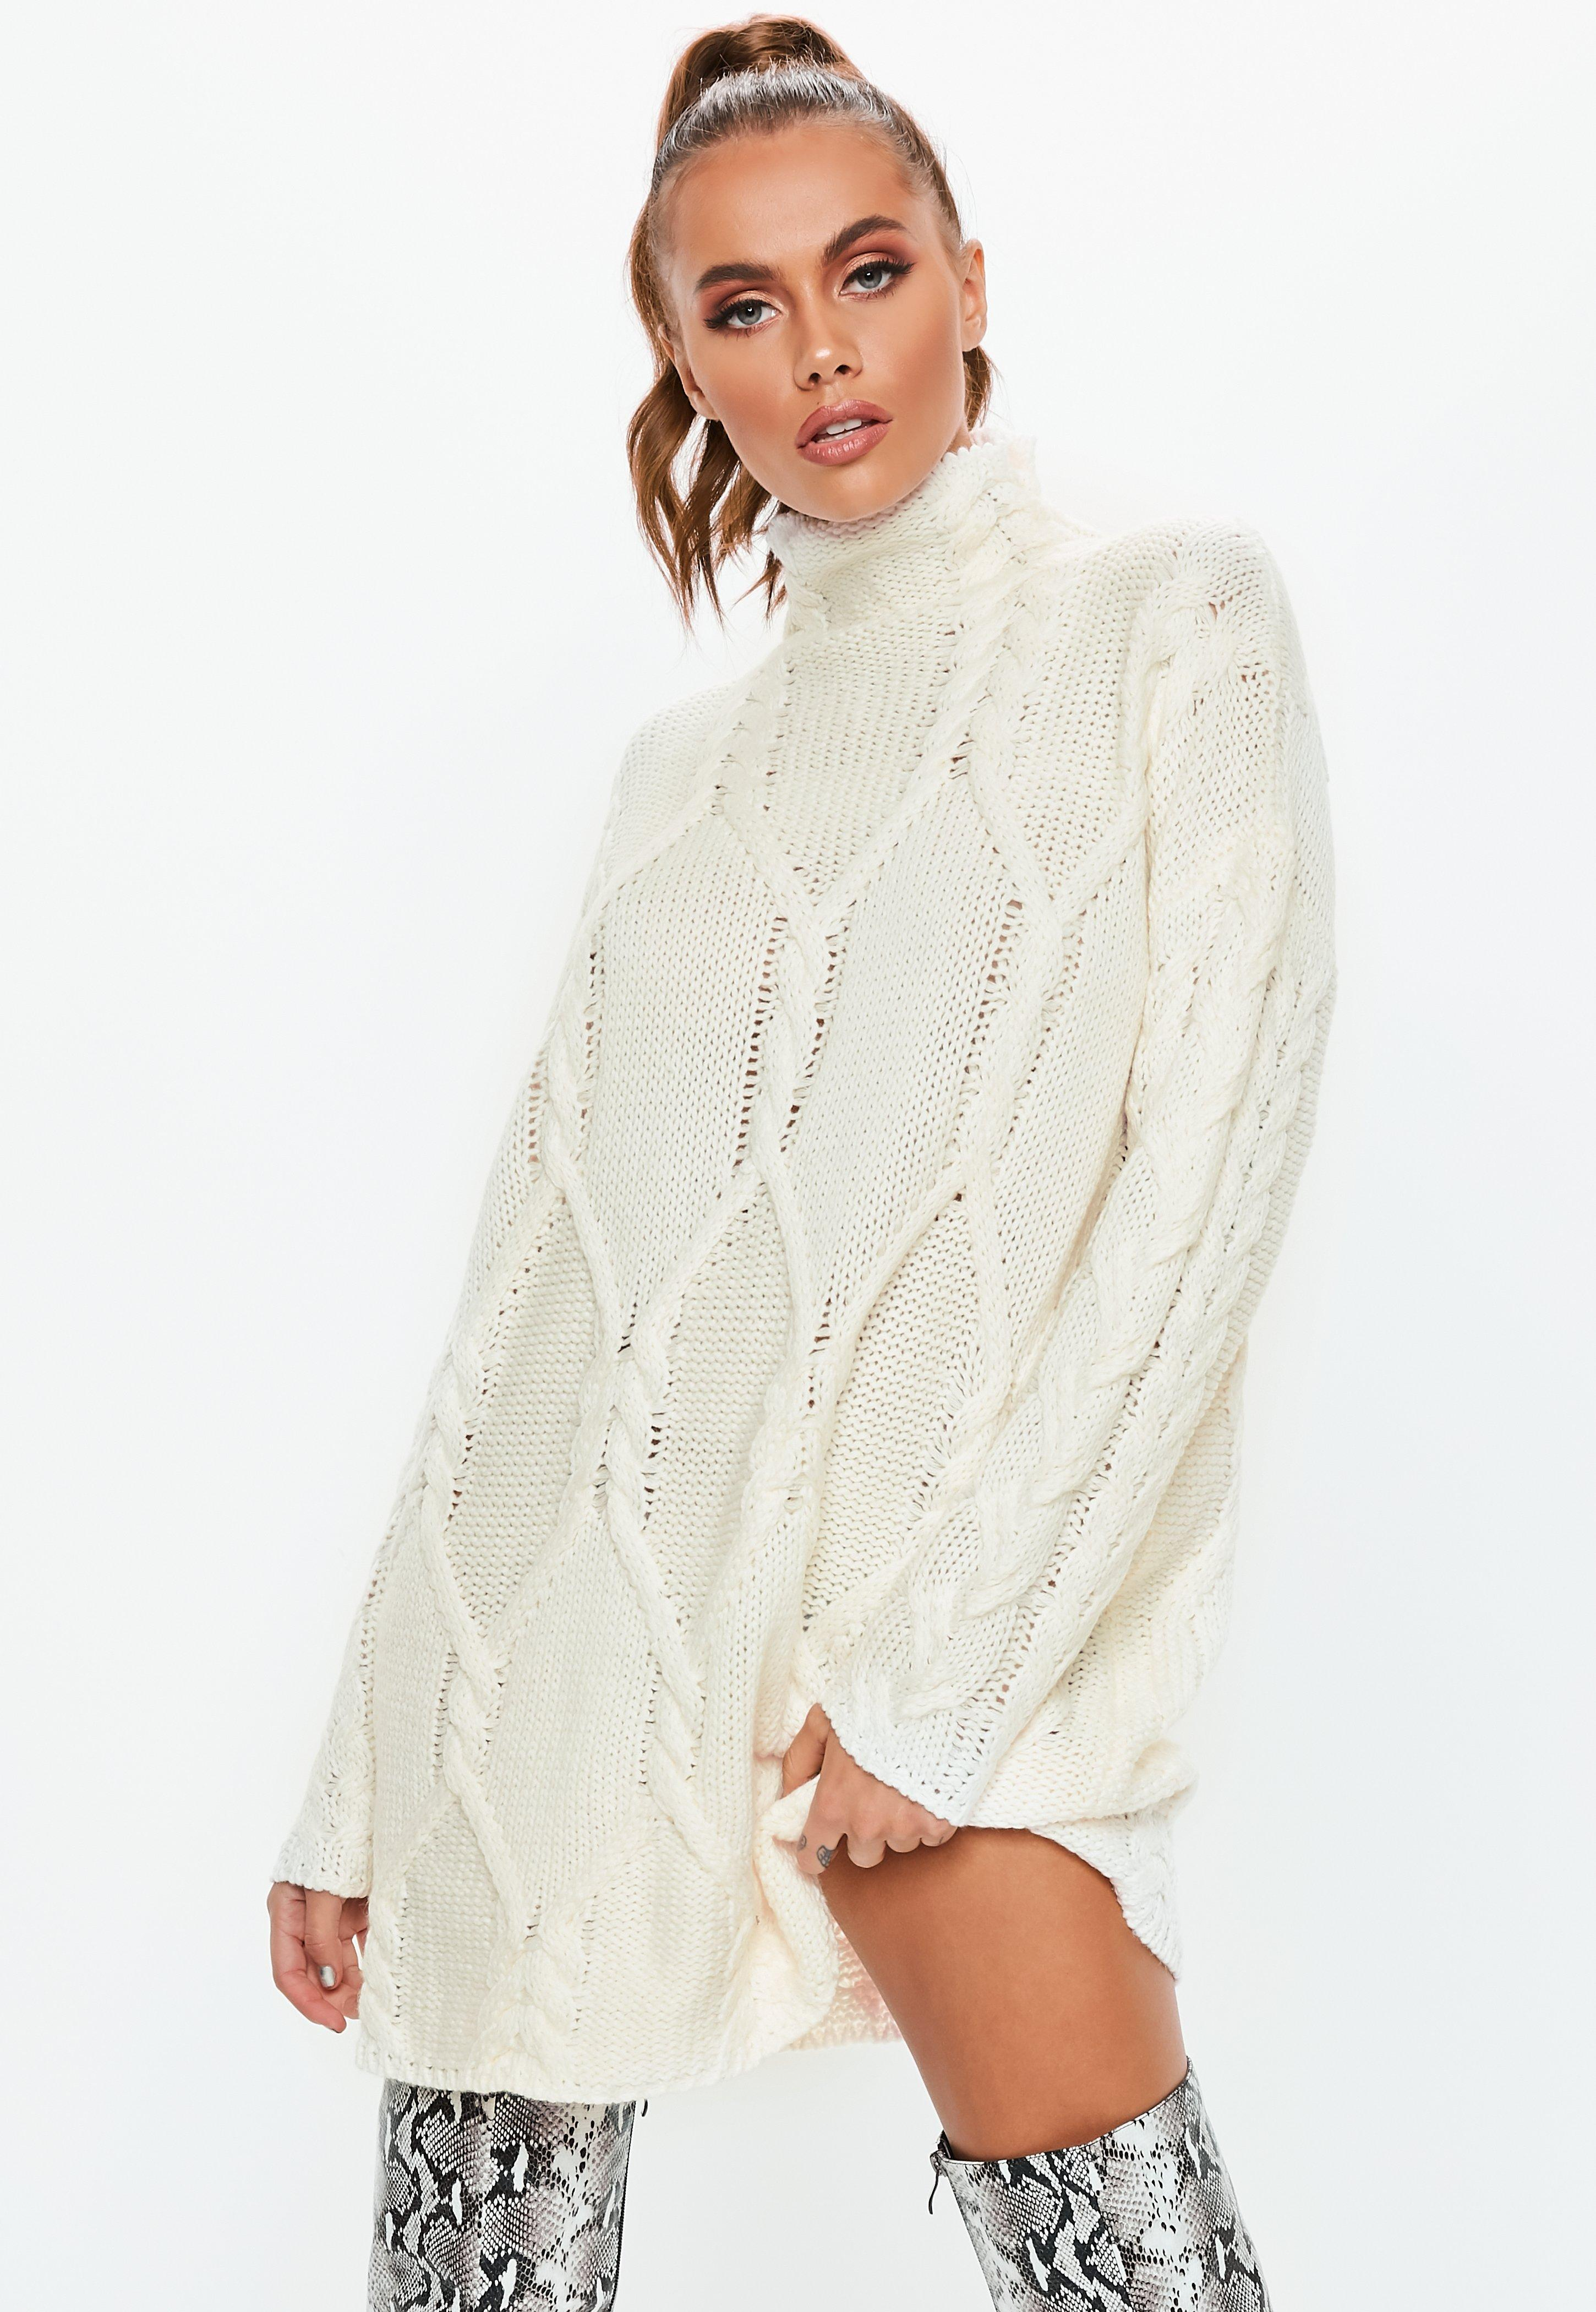 Lyst - Missguided Cream Cable Knit High Neck Jumper Dress in Natural 617d97efd